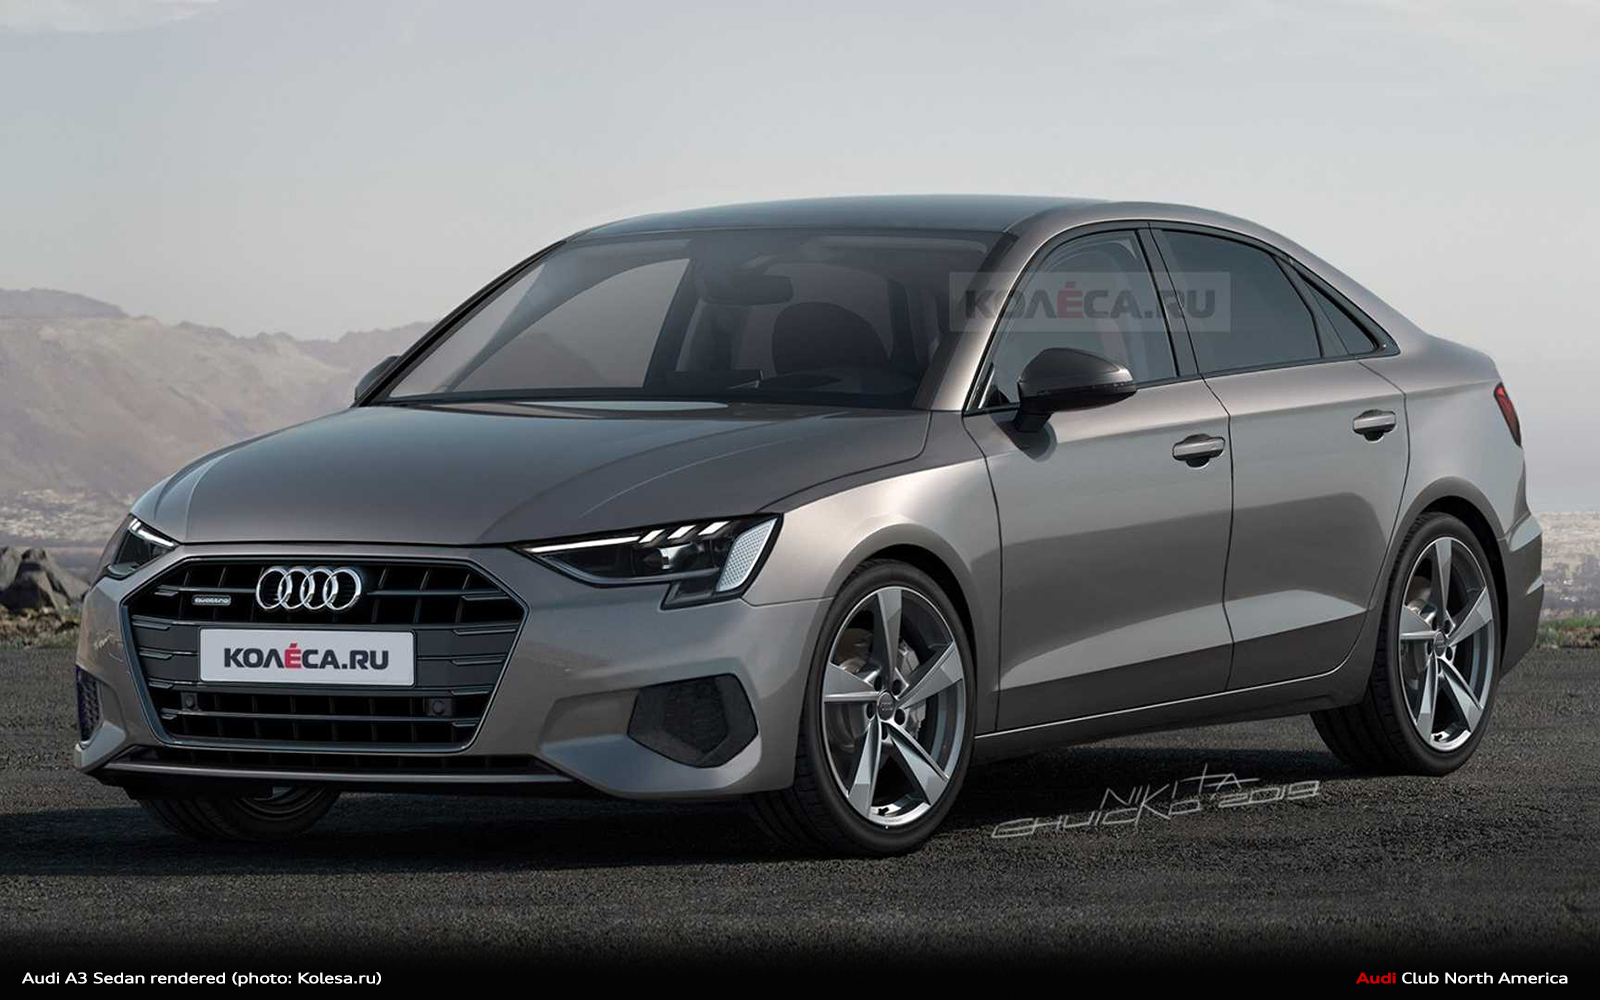 2021 Audi A3 Sedan Rendering 2 Copy Audi Club North America